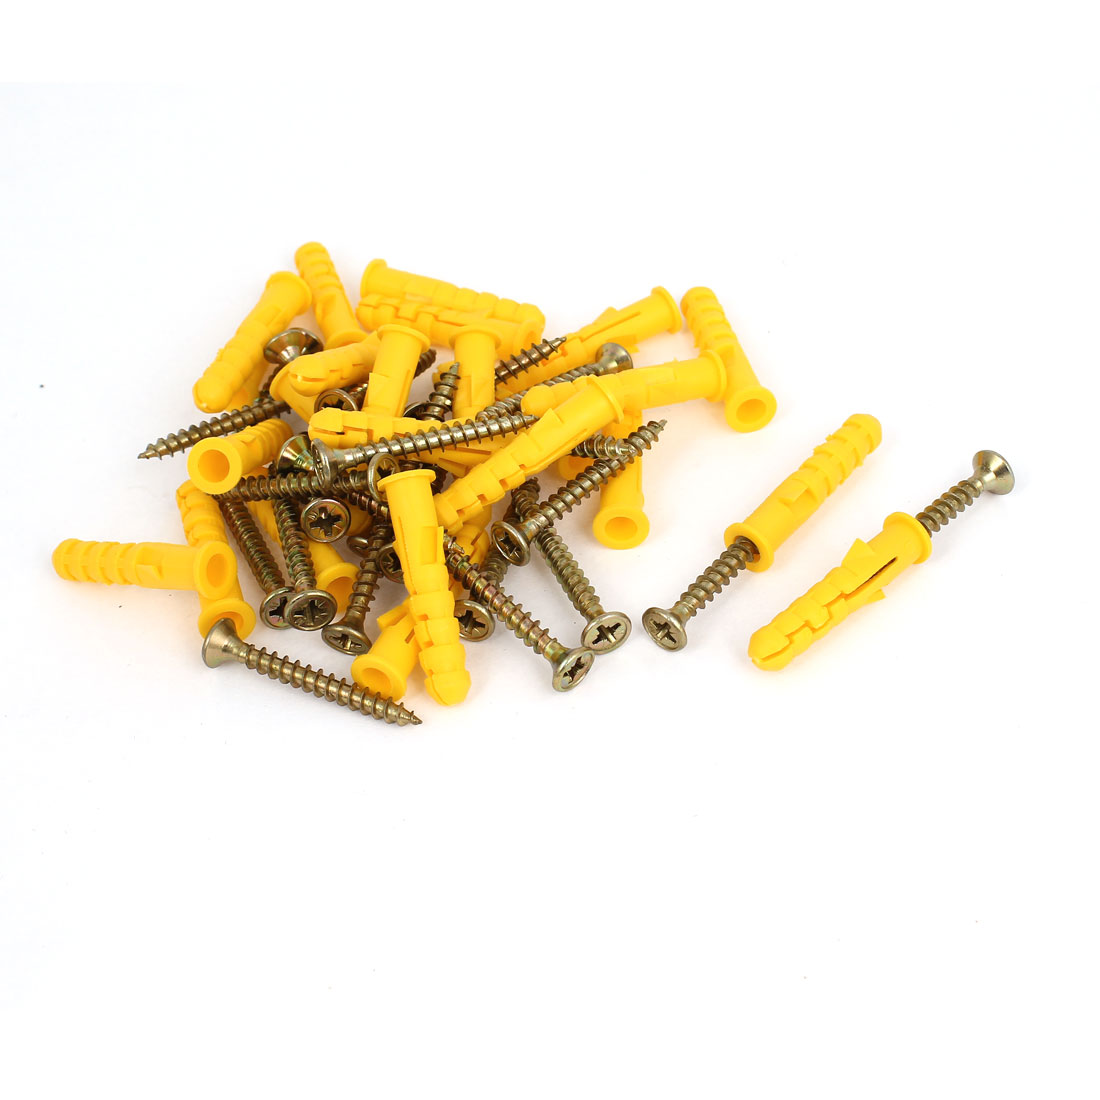 25 Pcs Pozidriv Flat Head Self Drilling Drywall Screws Nails Yellow Anchor Kits